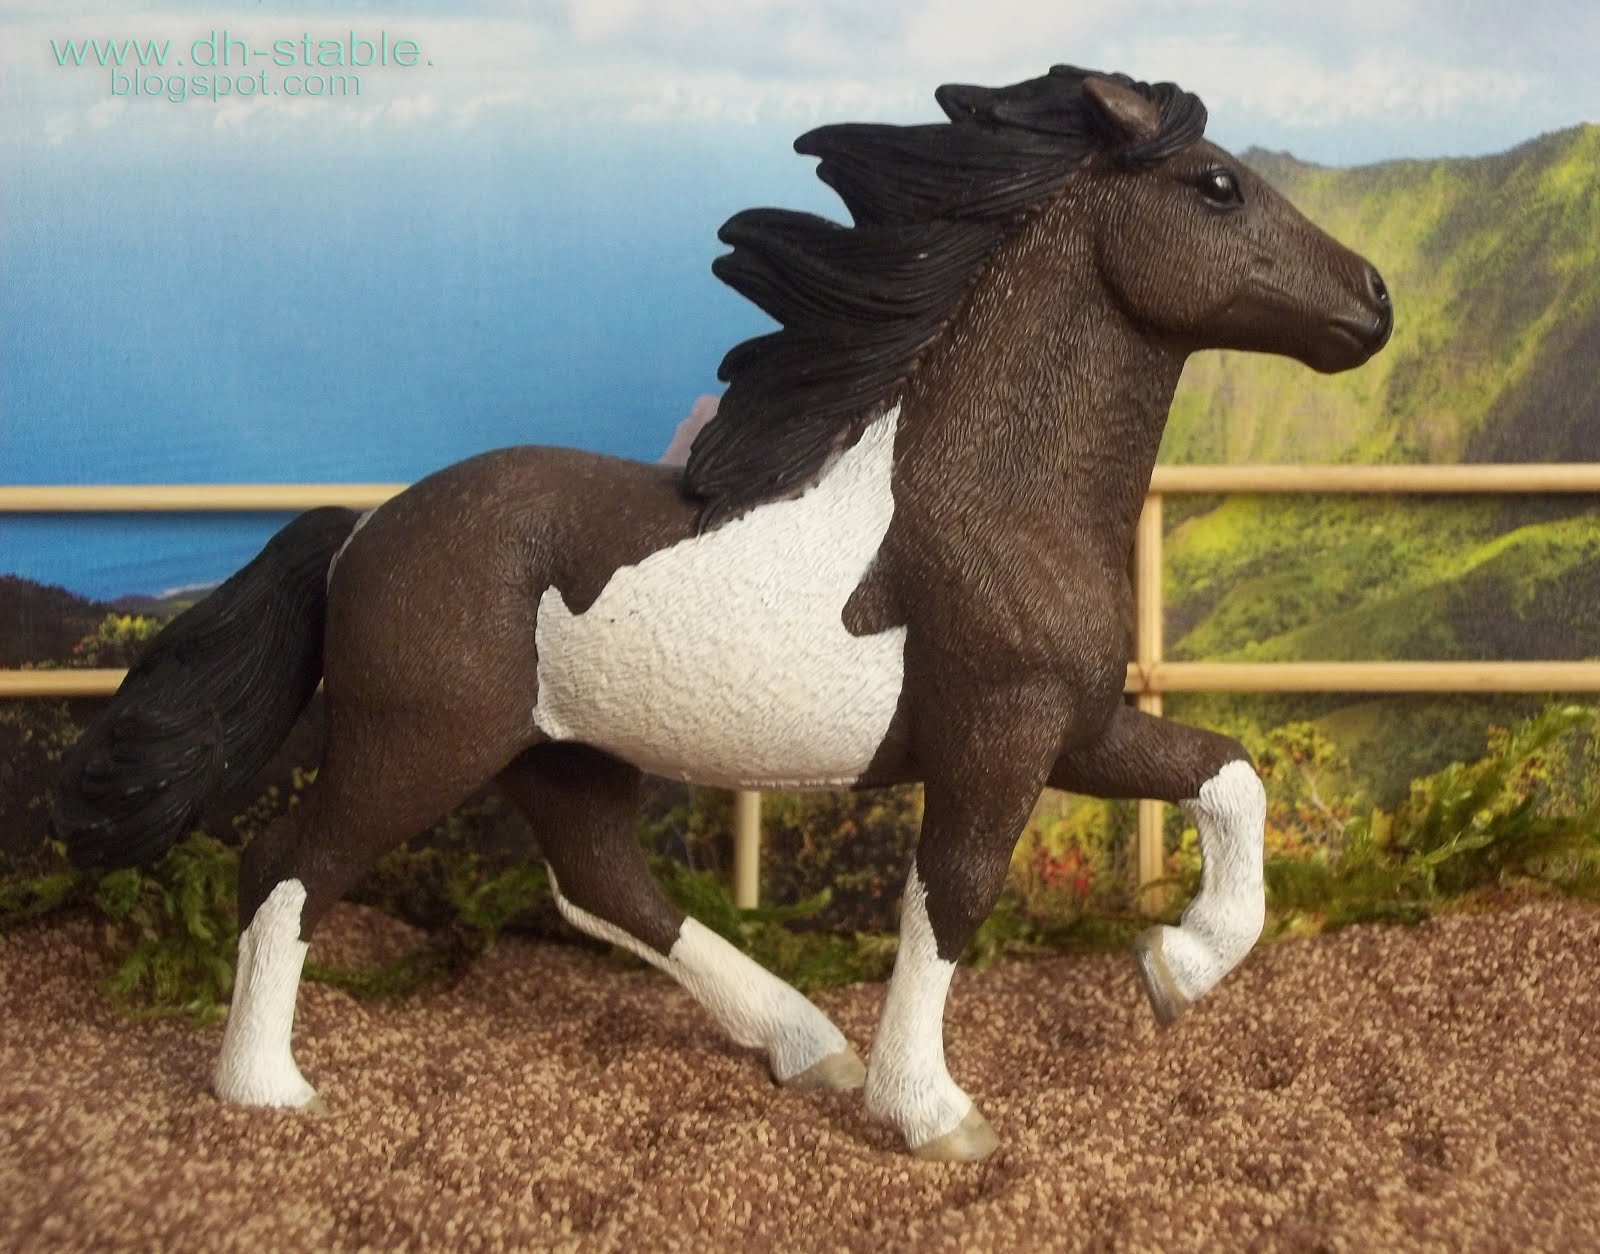 Arte Replay Mustang Dh Stable Modelli Di Cavalli Breyer Collecta Stone Modellini